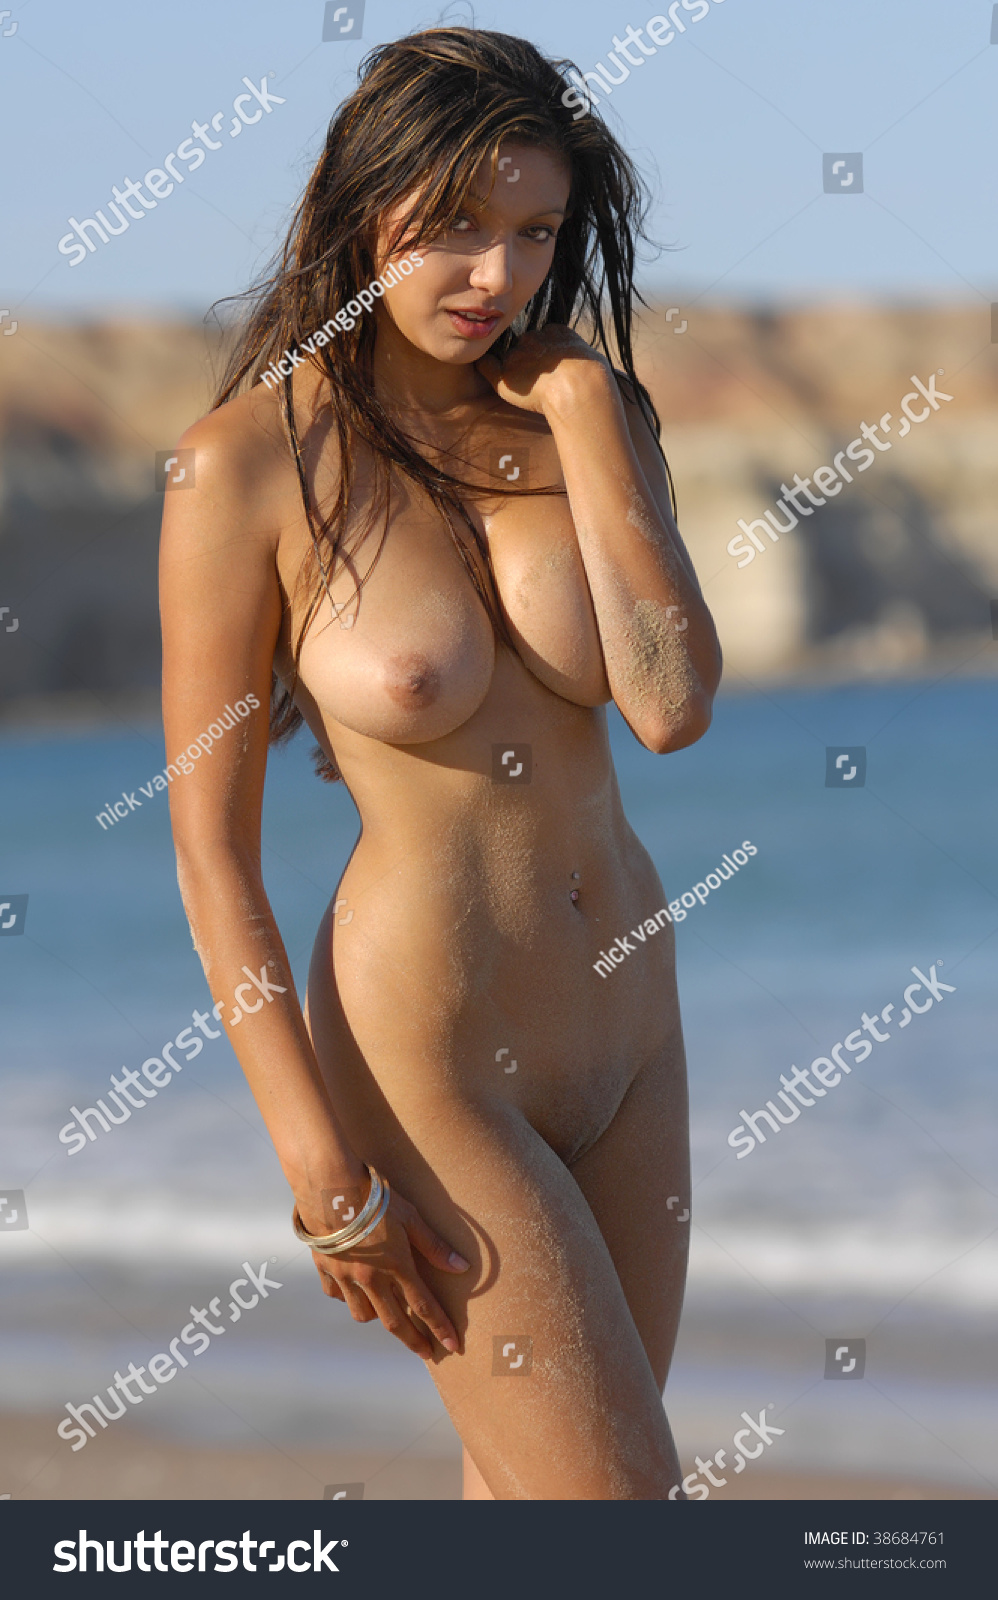 nude women sex beach